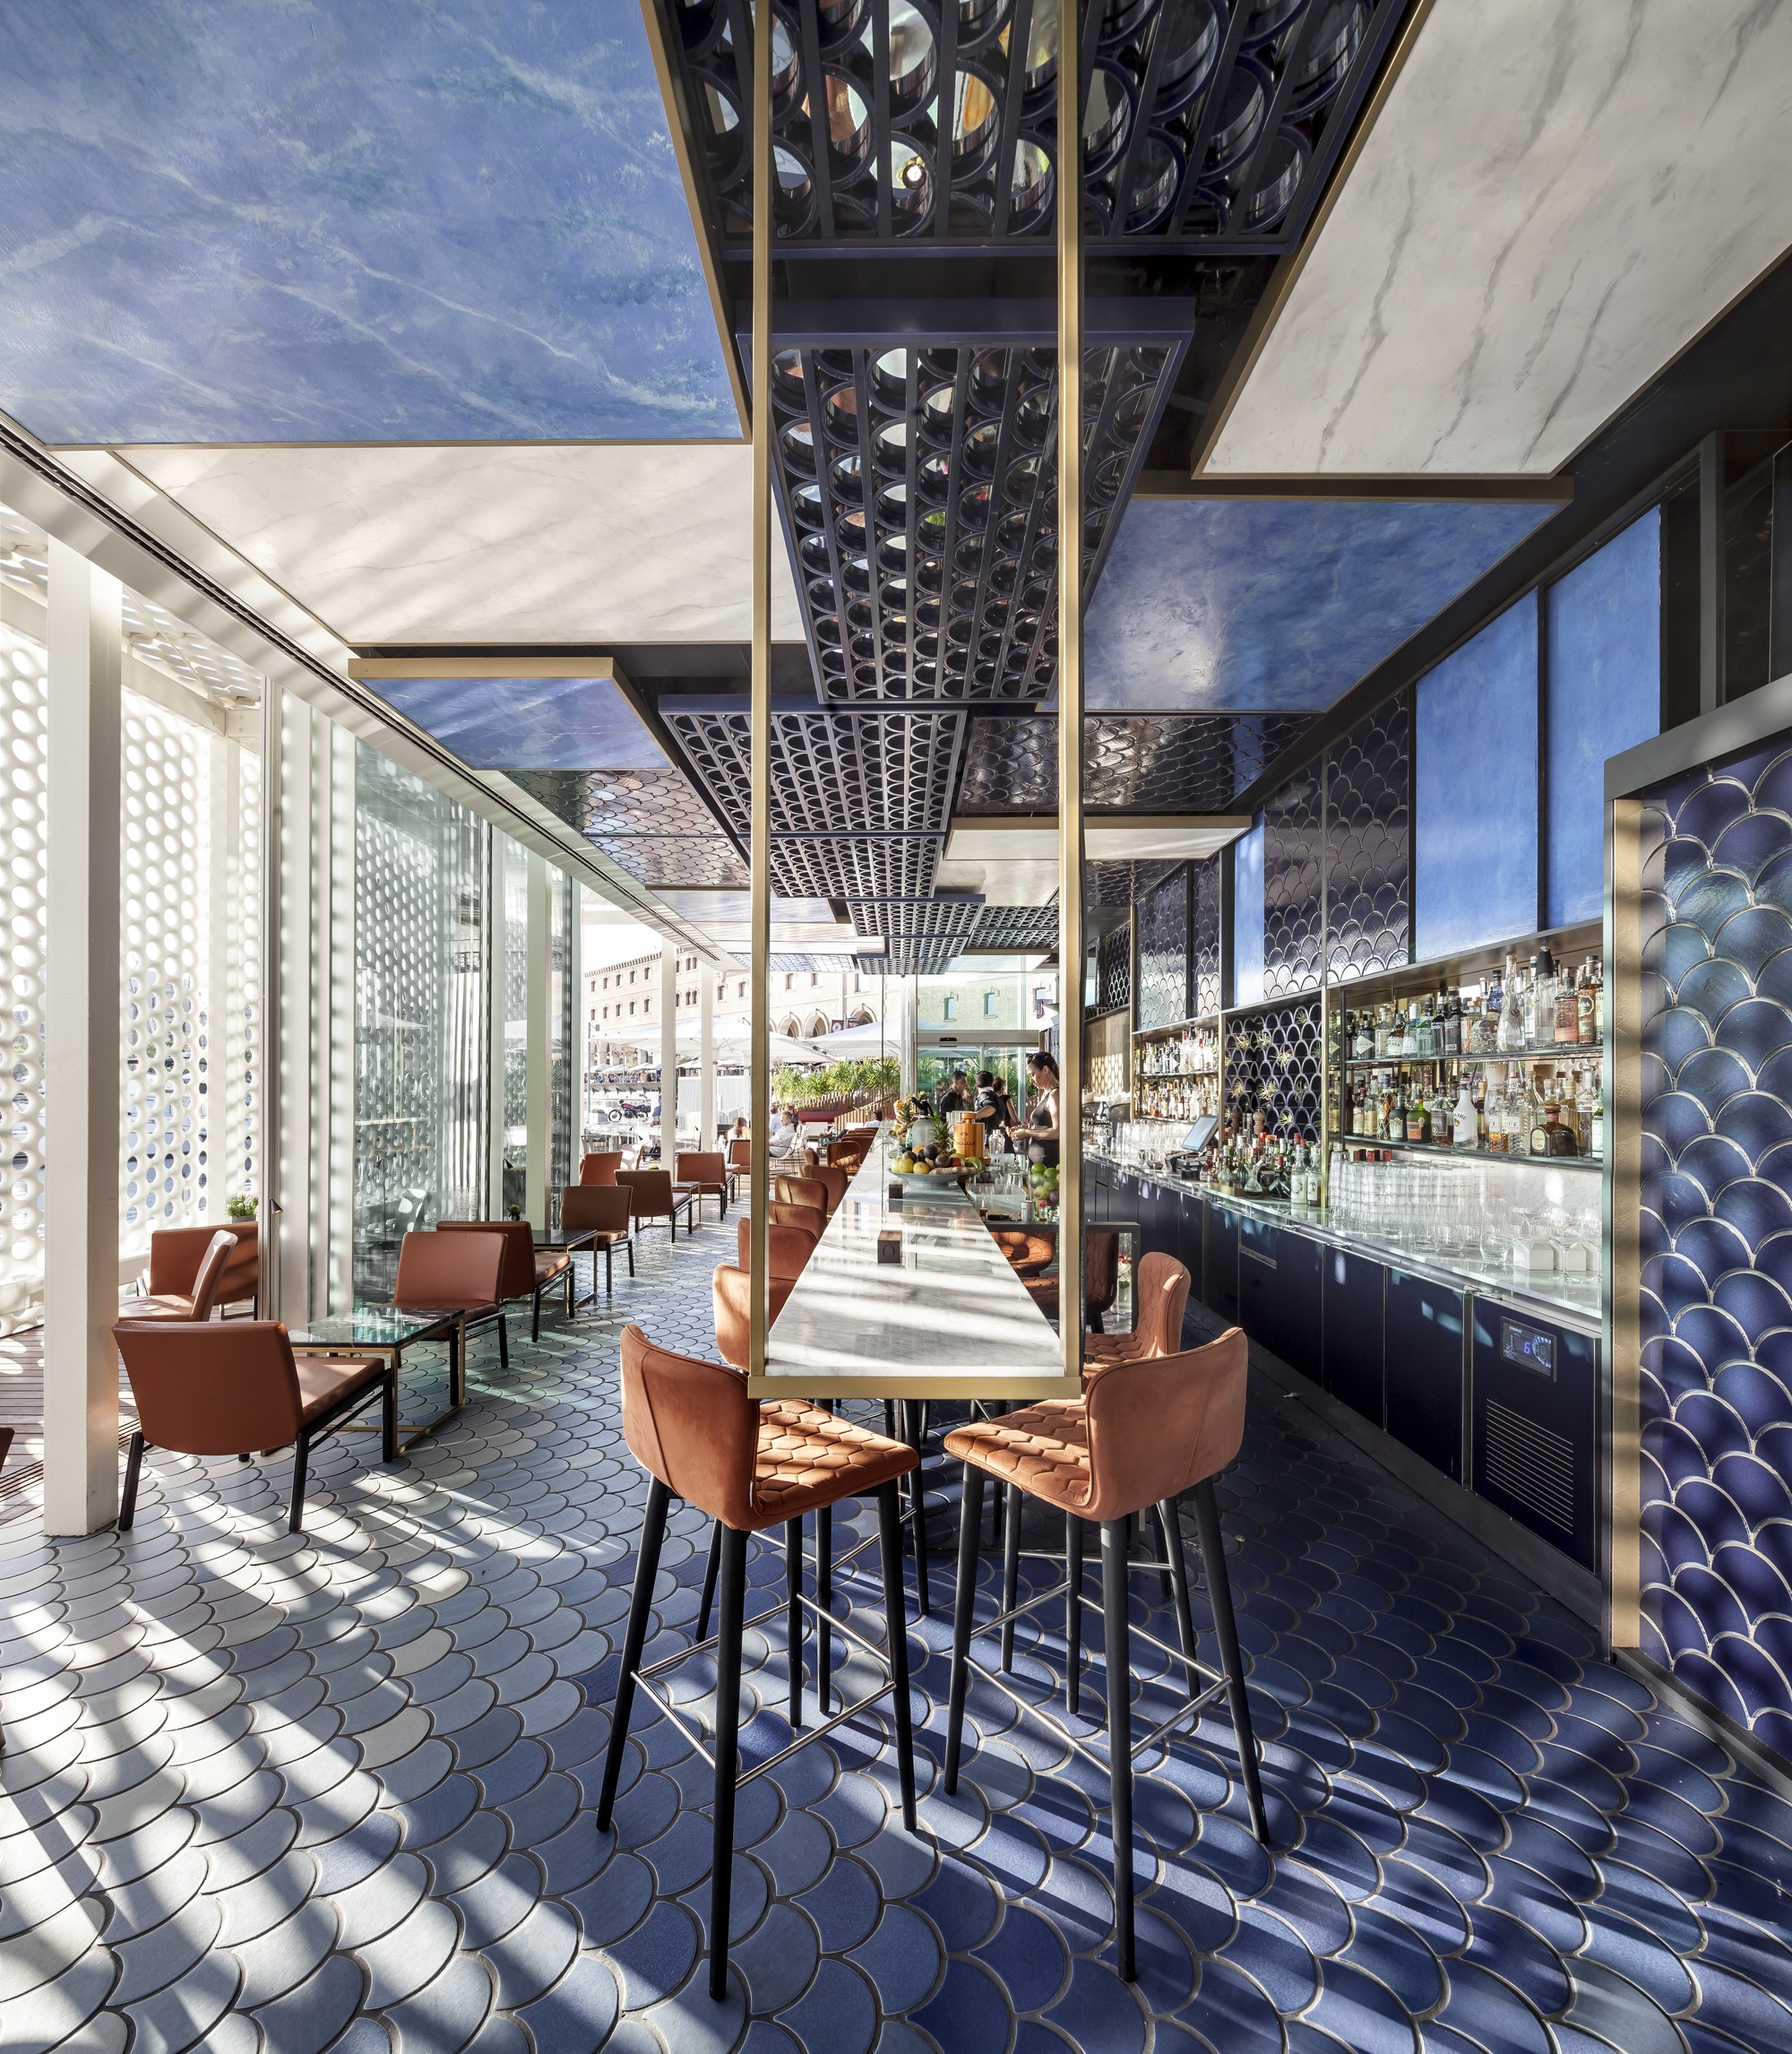 2016 Restaurant & Bar Design Awards Announced | ArchDaily